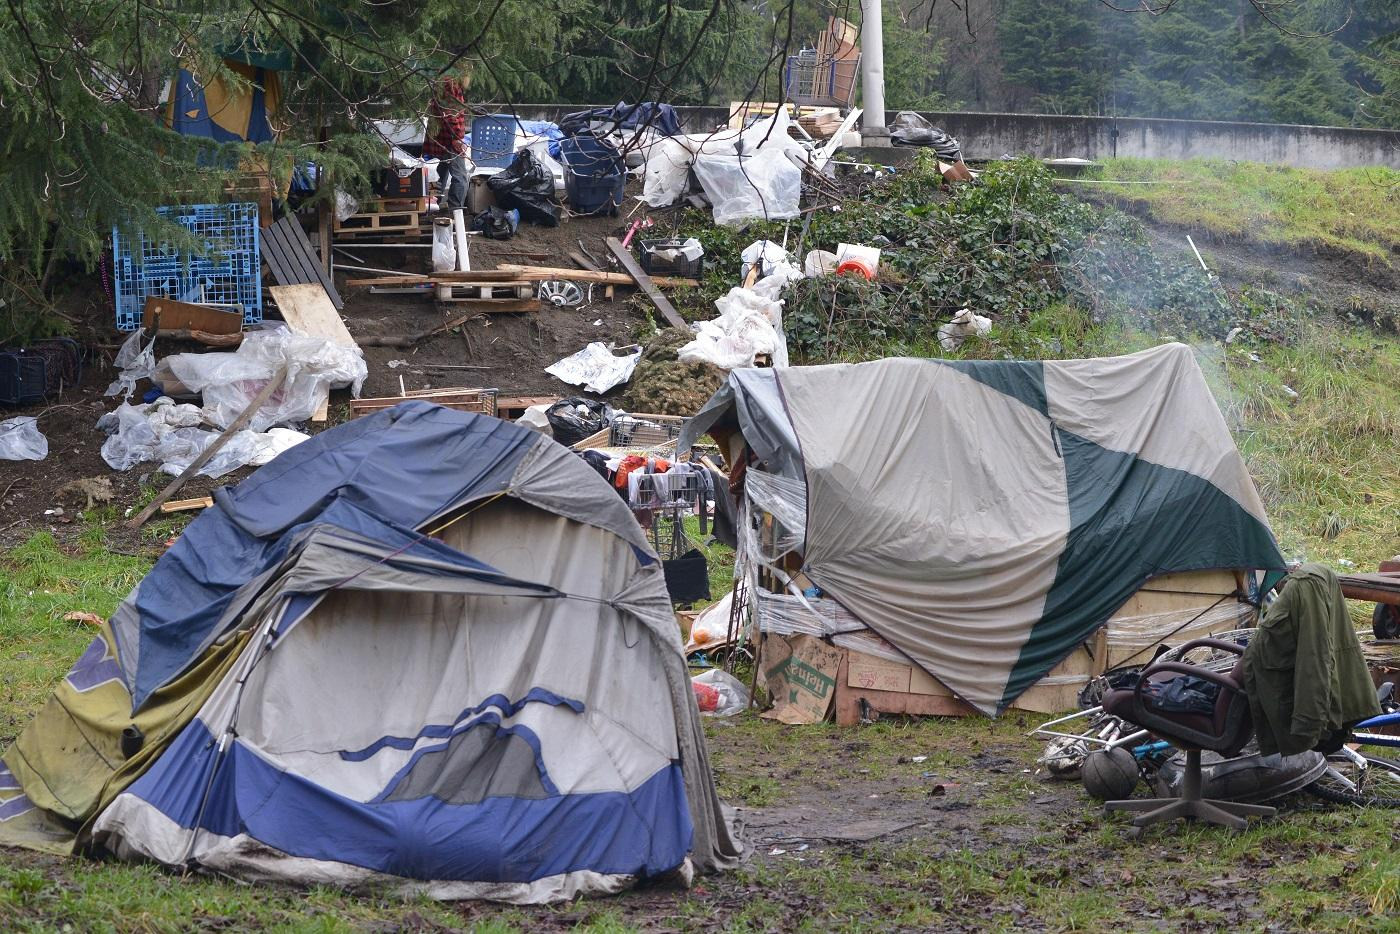 This tent city is part of an area known as the Jungle an unsanctioned enc&ment in Seattle. & South Seattle To Get Cityu0027s Third Tent City | KUOW News and ...